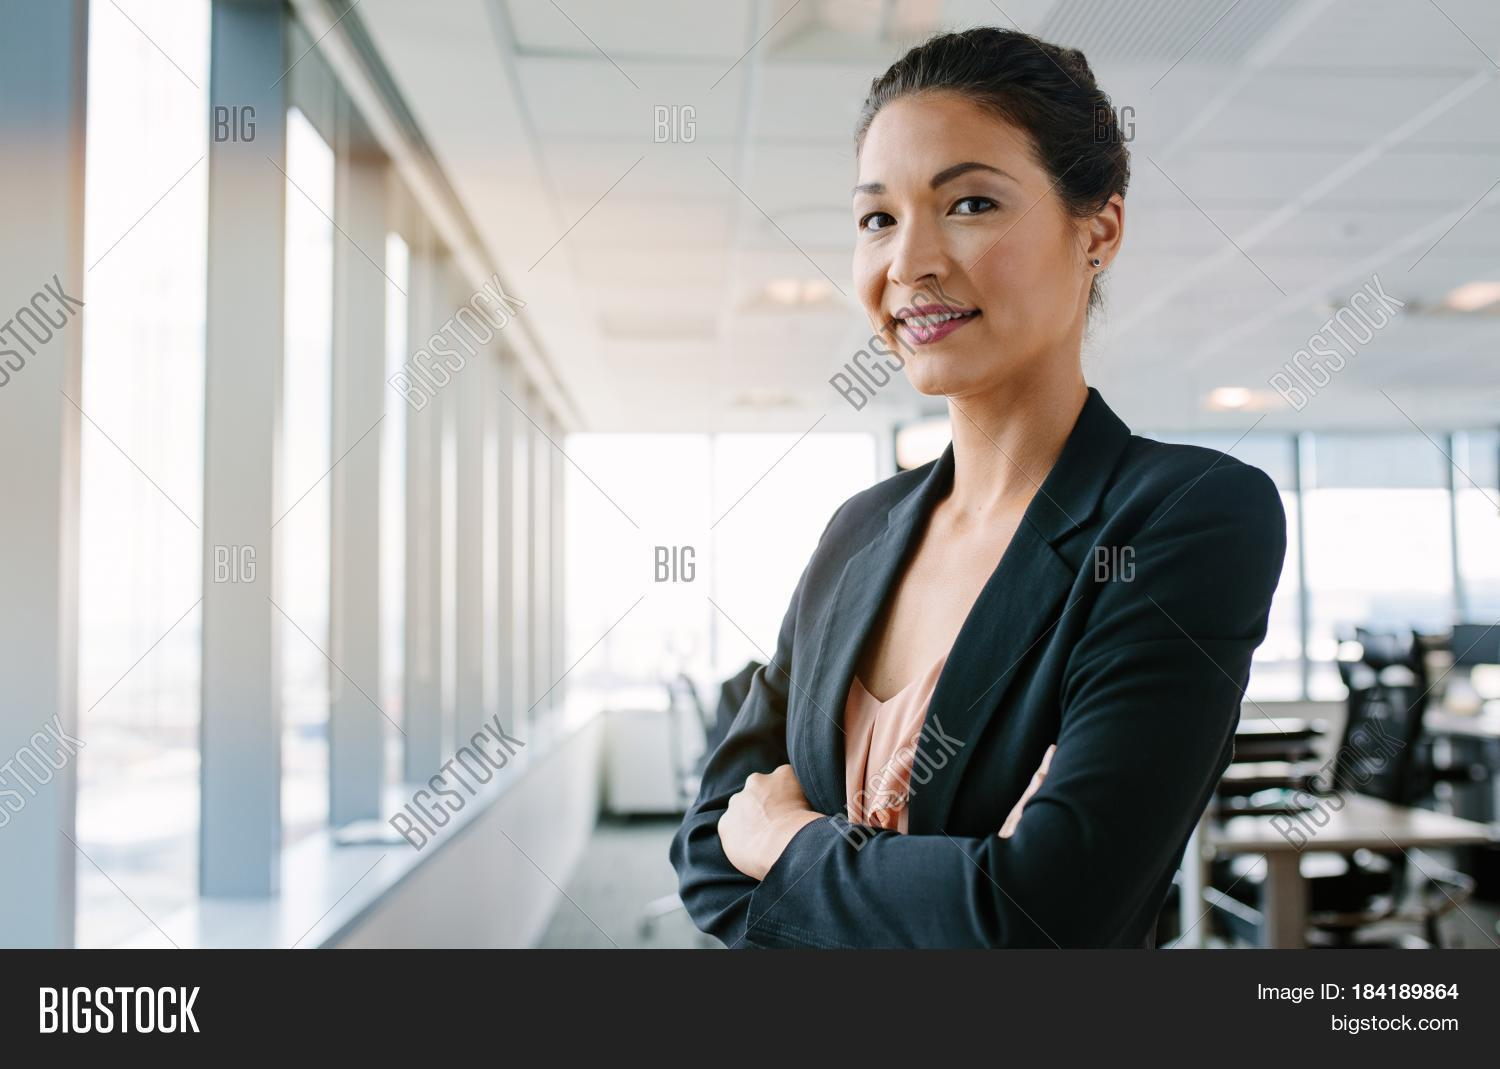 portrait mature businesswoman image & photo | bigstock